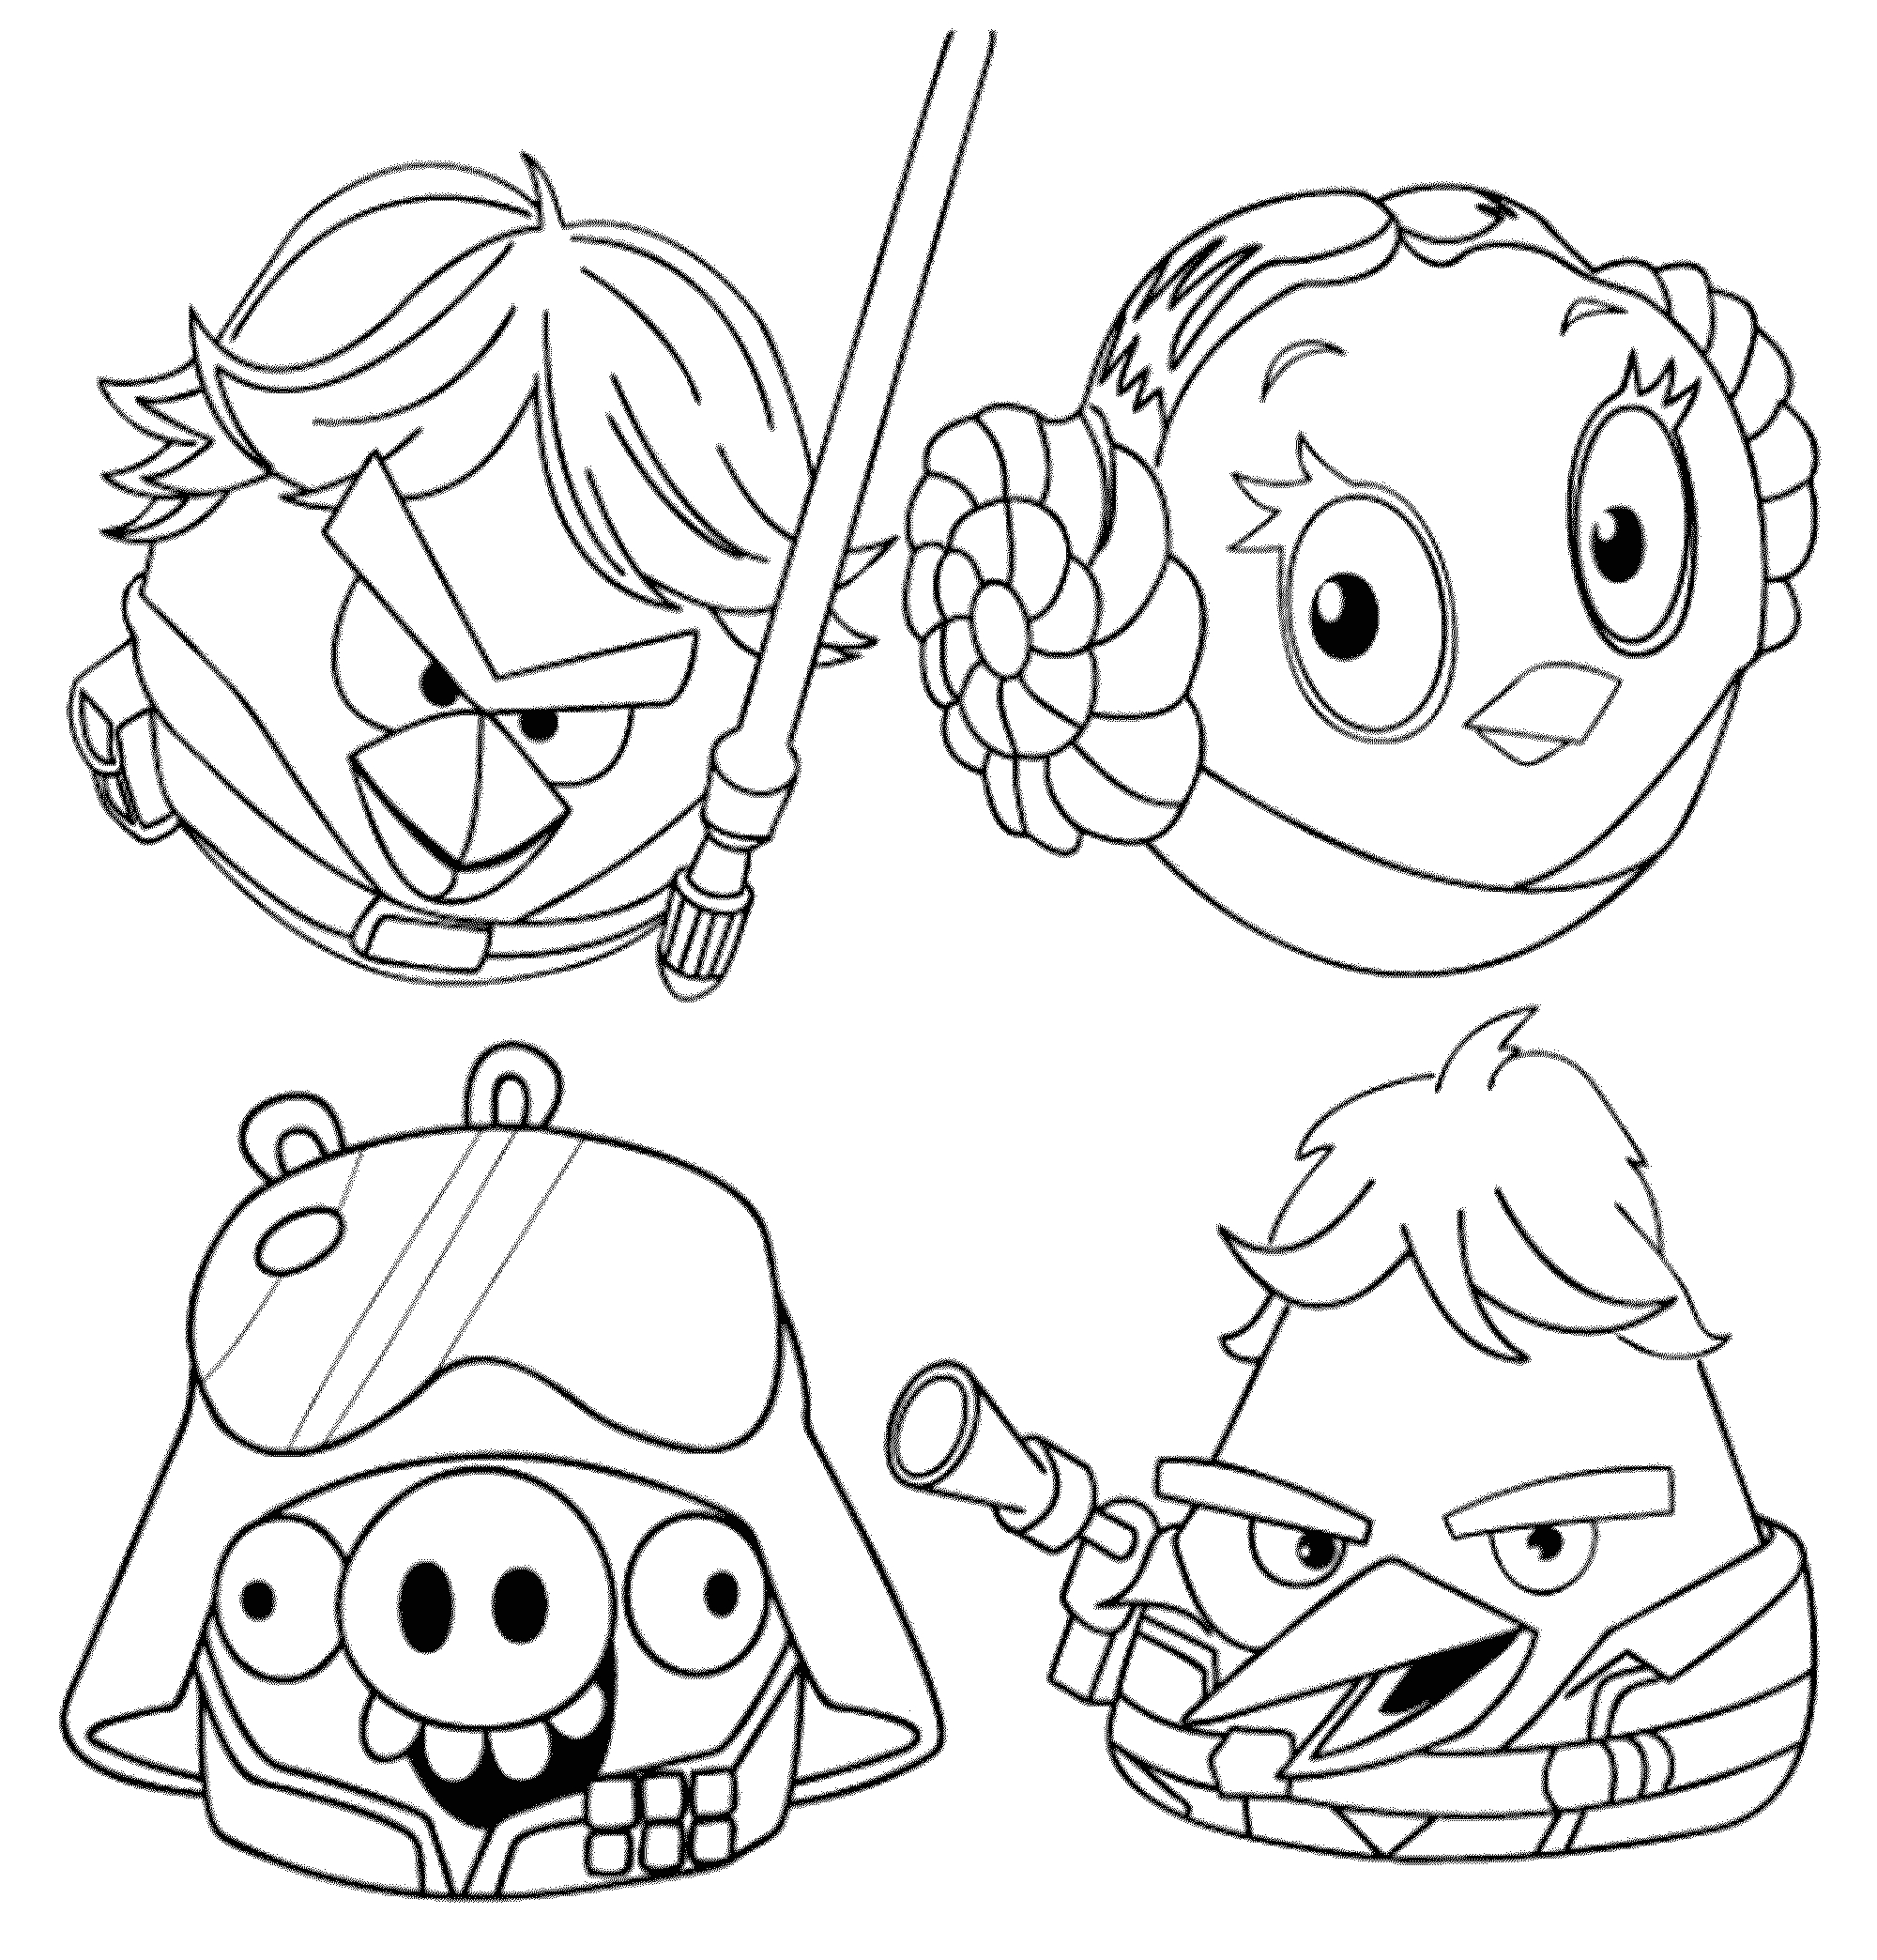 Angry Birds Space Free Printable Coloring Pages Angry Birds Coloring Pages for Your Small Kids